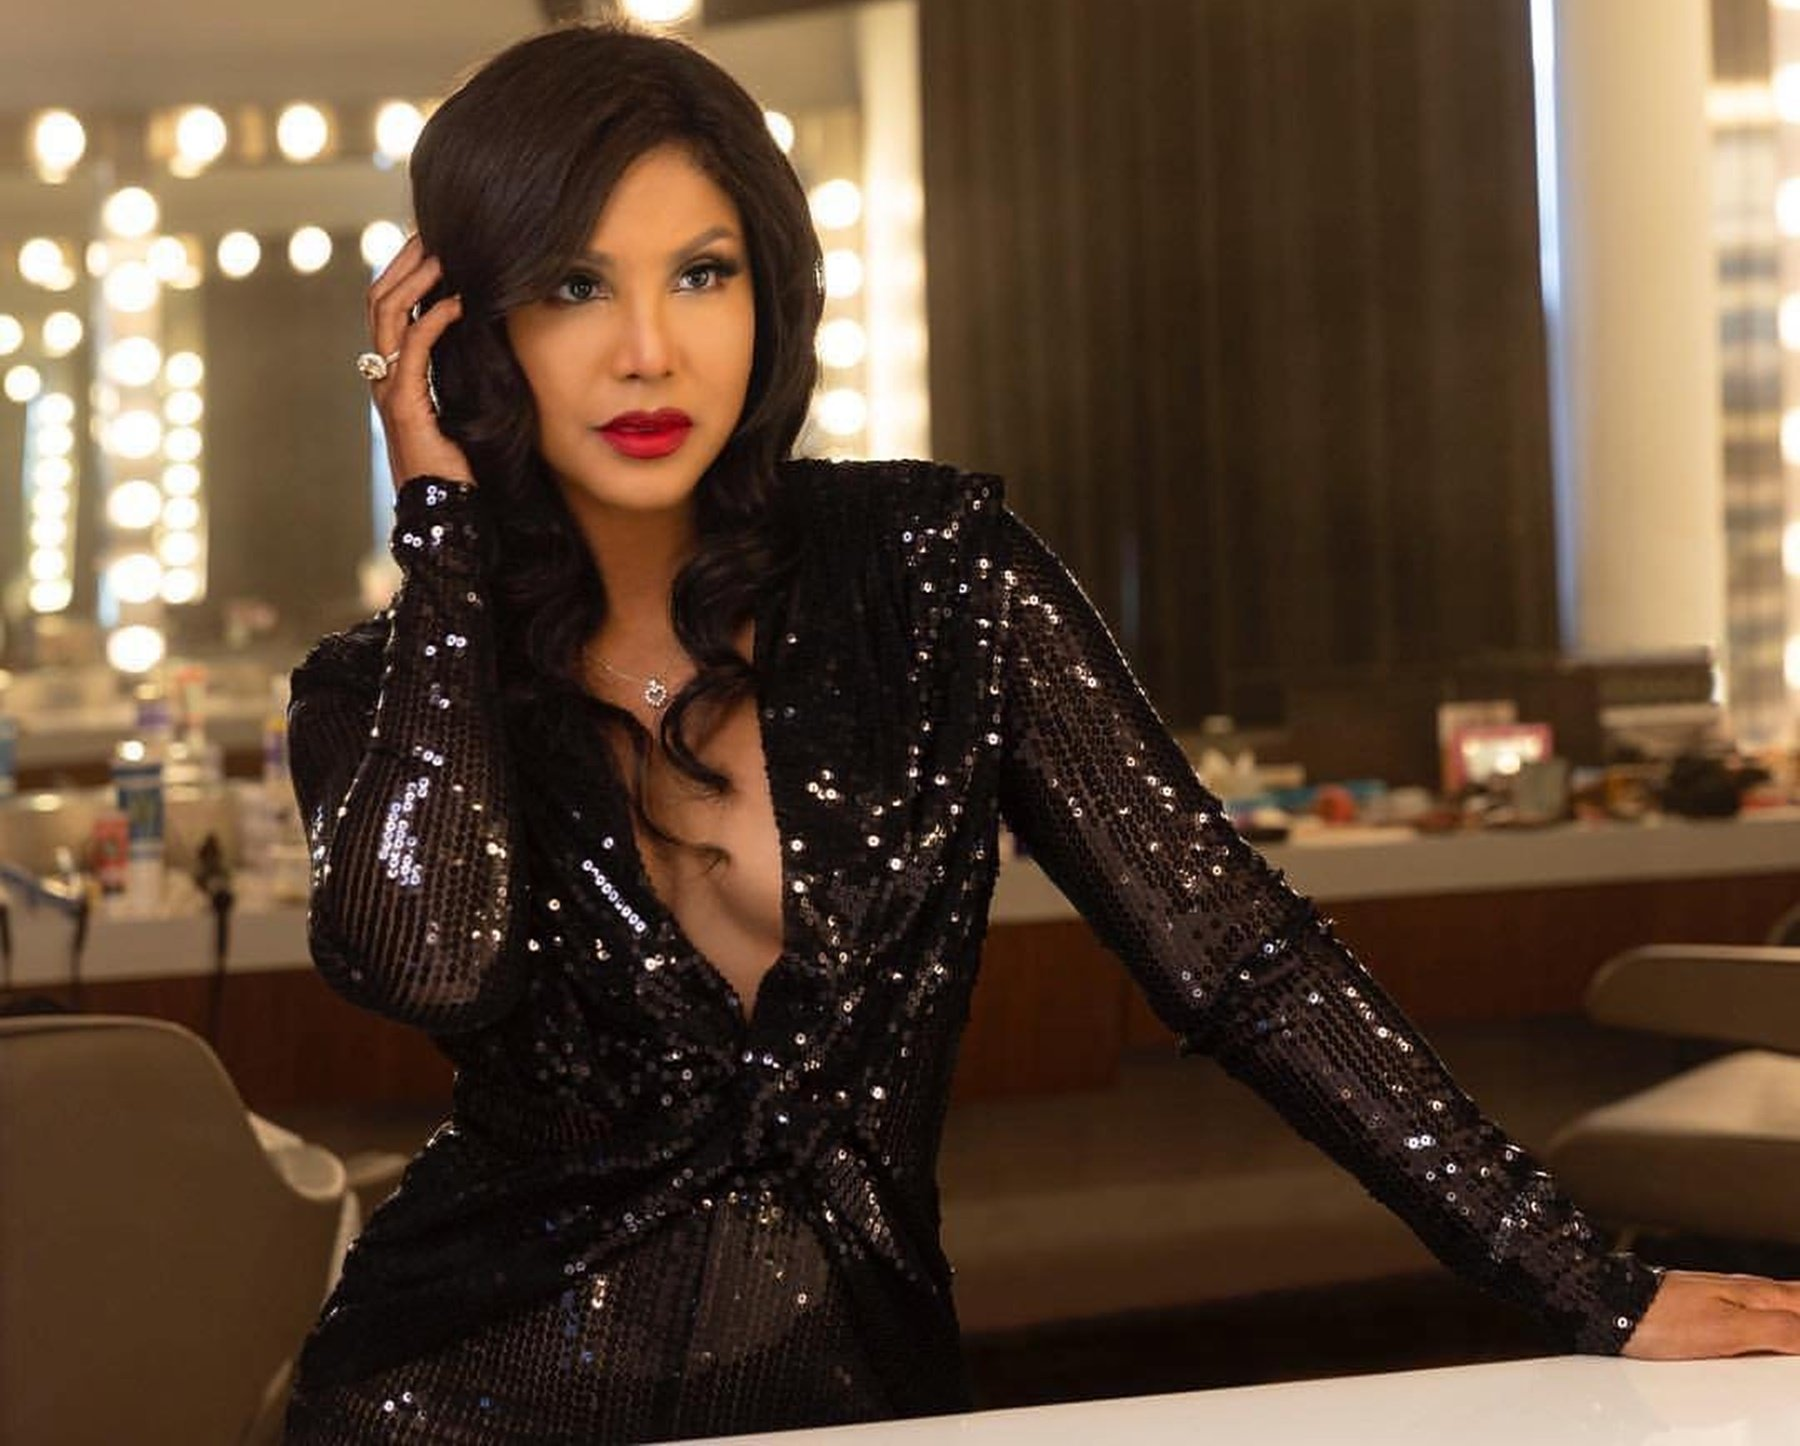 Toni Braxton's Throwback Photo Has Fans Praising Her Like There's No Tomorrow - See It Here